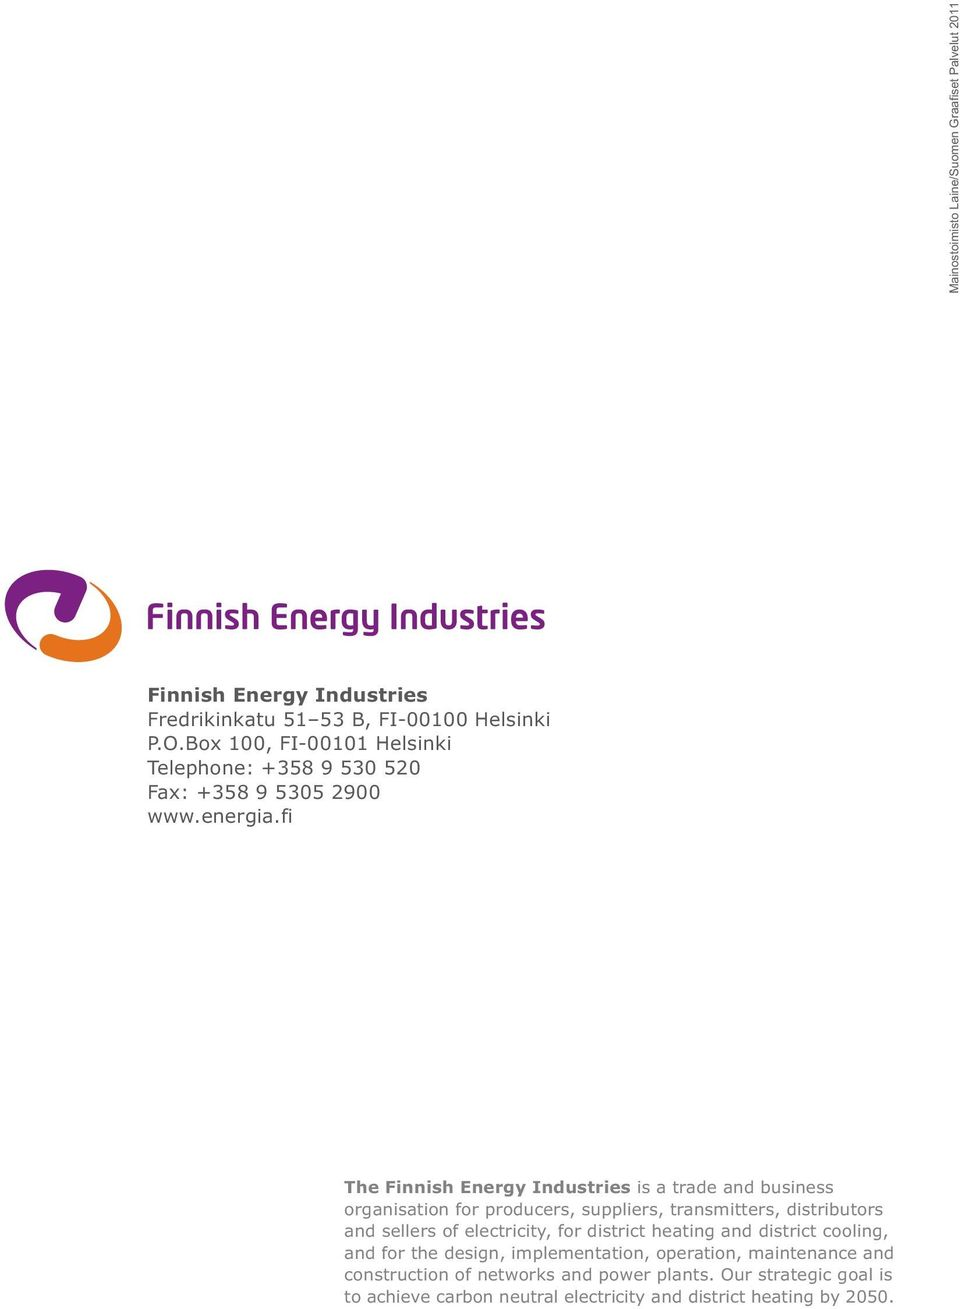 fi The Finnish Energy Industries is a trade and business organisation for producers, suppliers, transmitters, distributors and sellers of